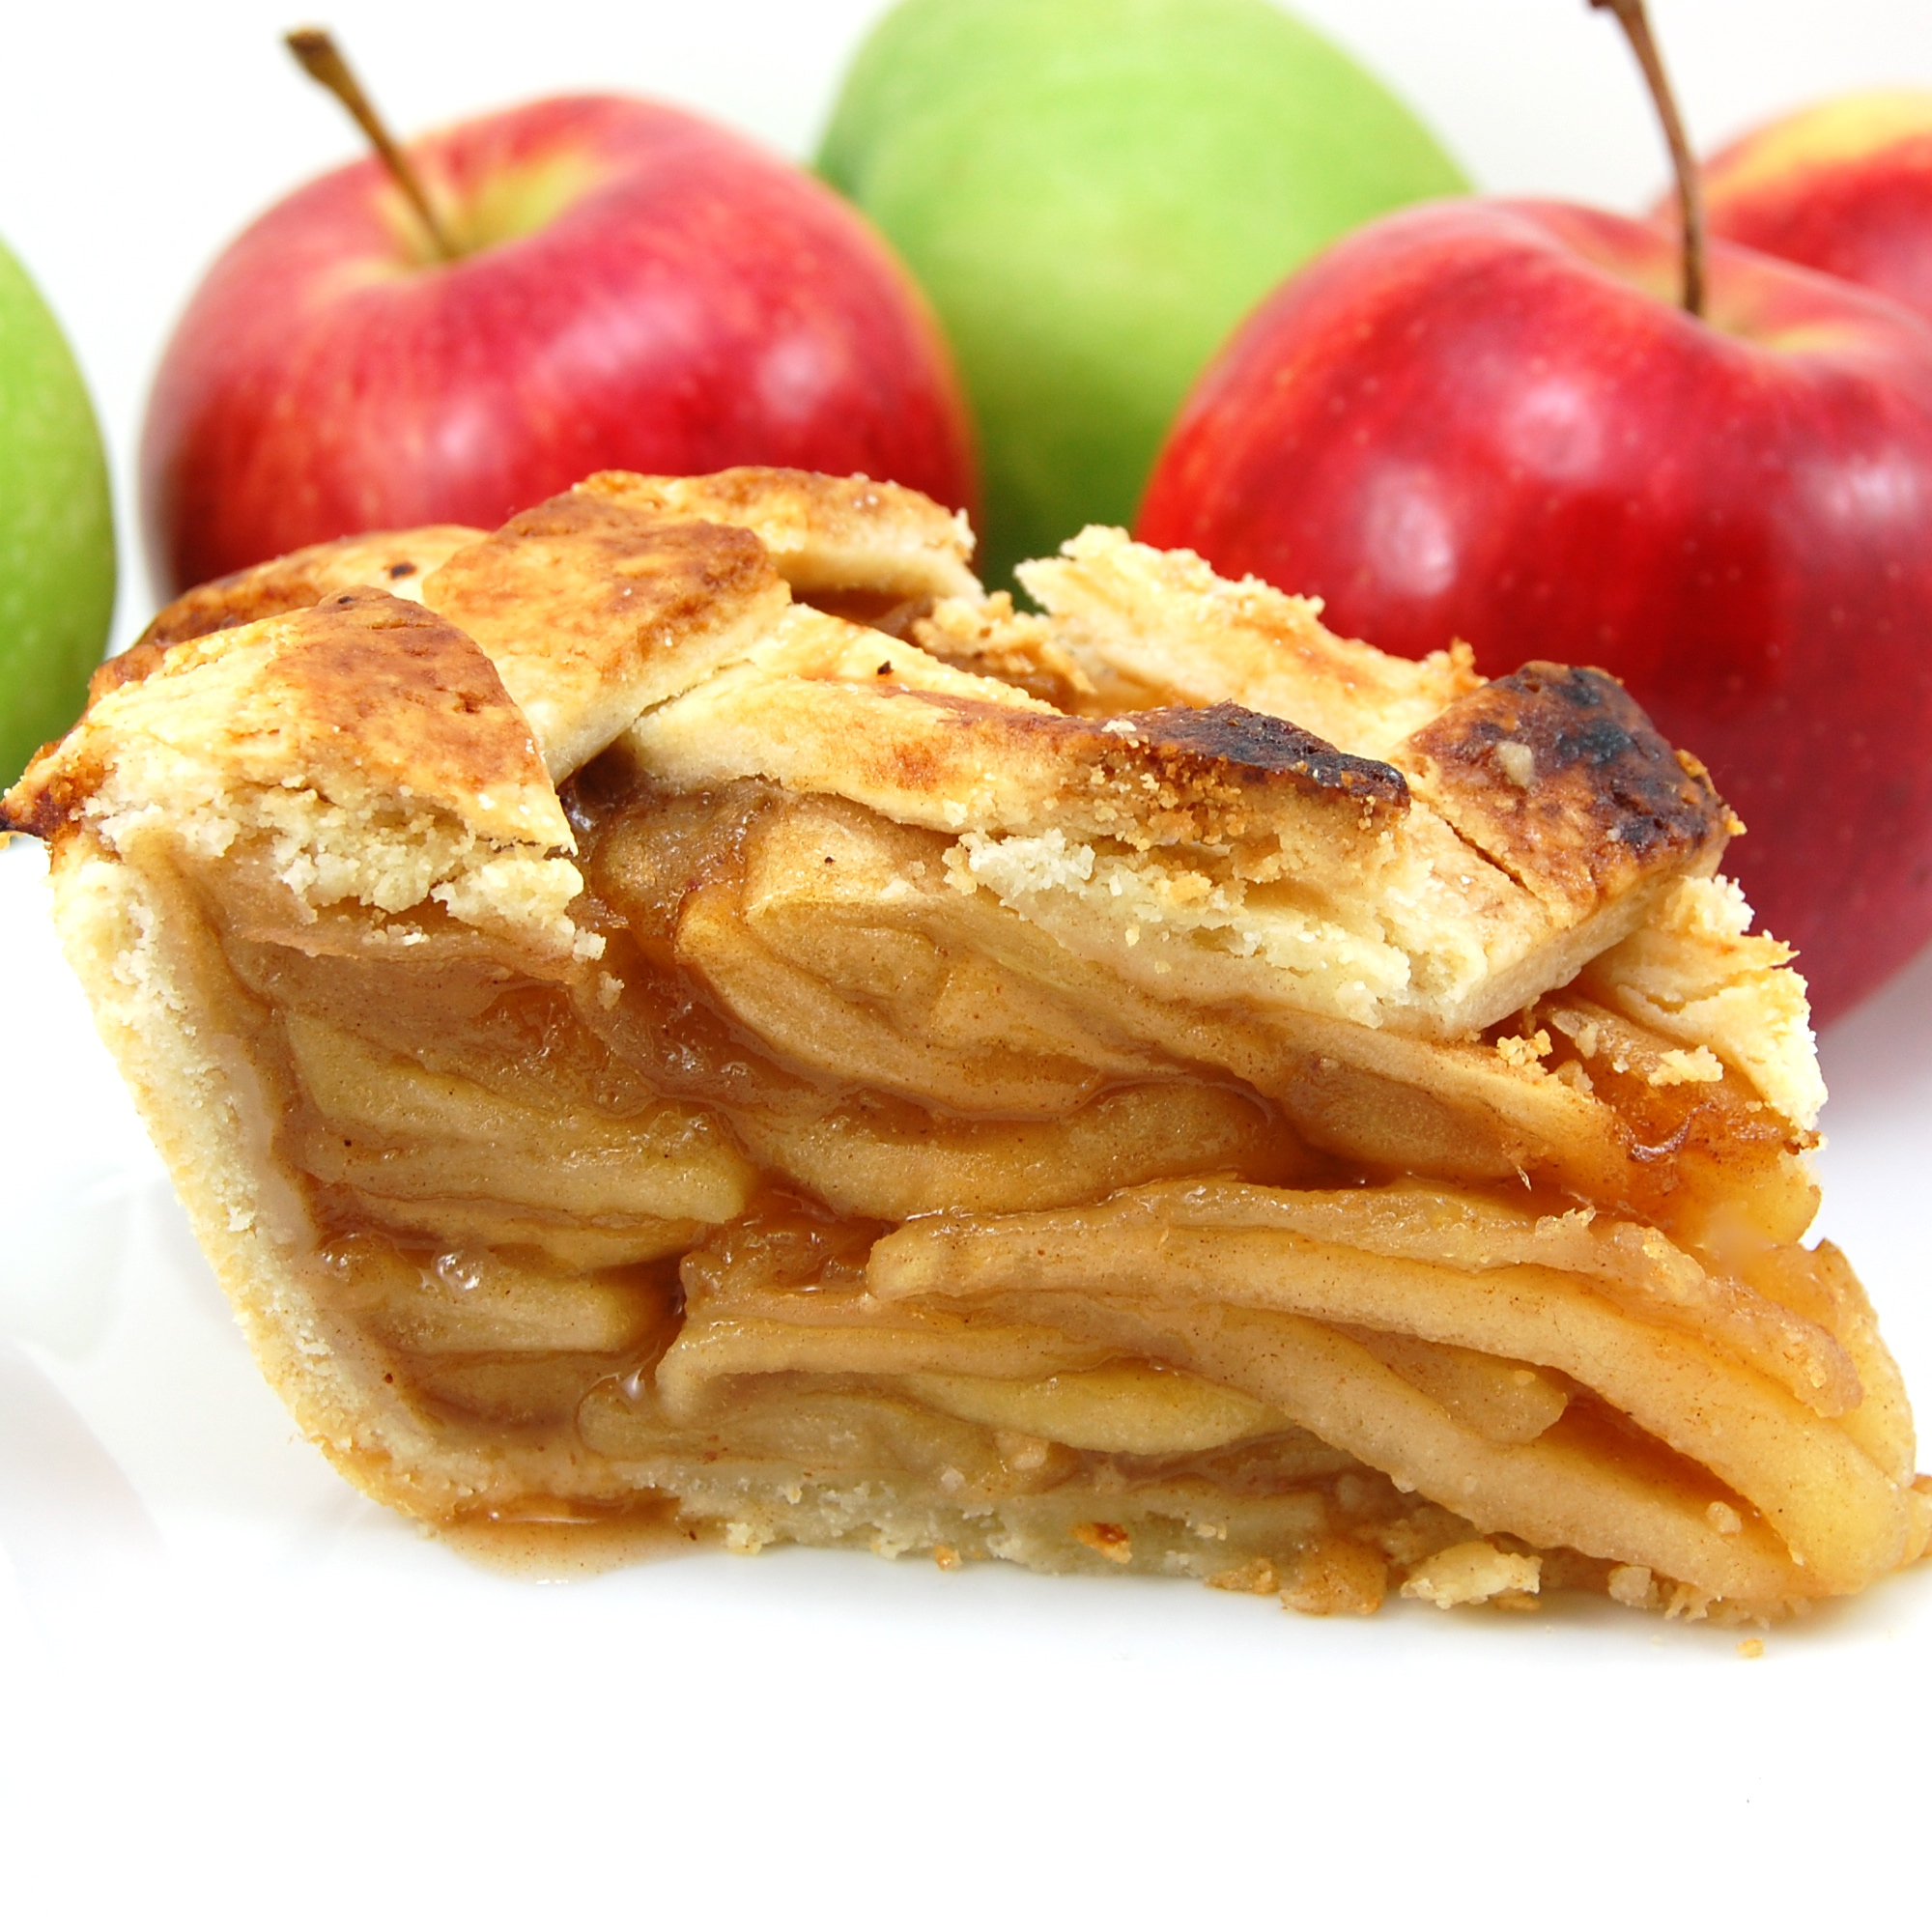 Apple Pie | The Sout